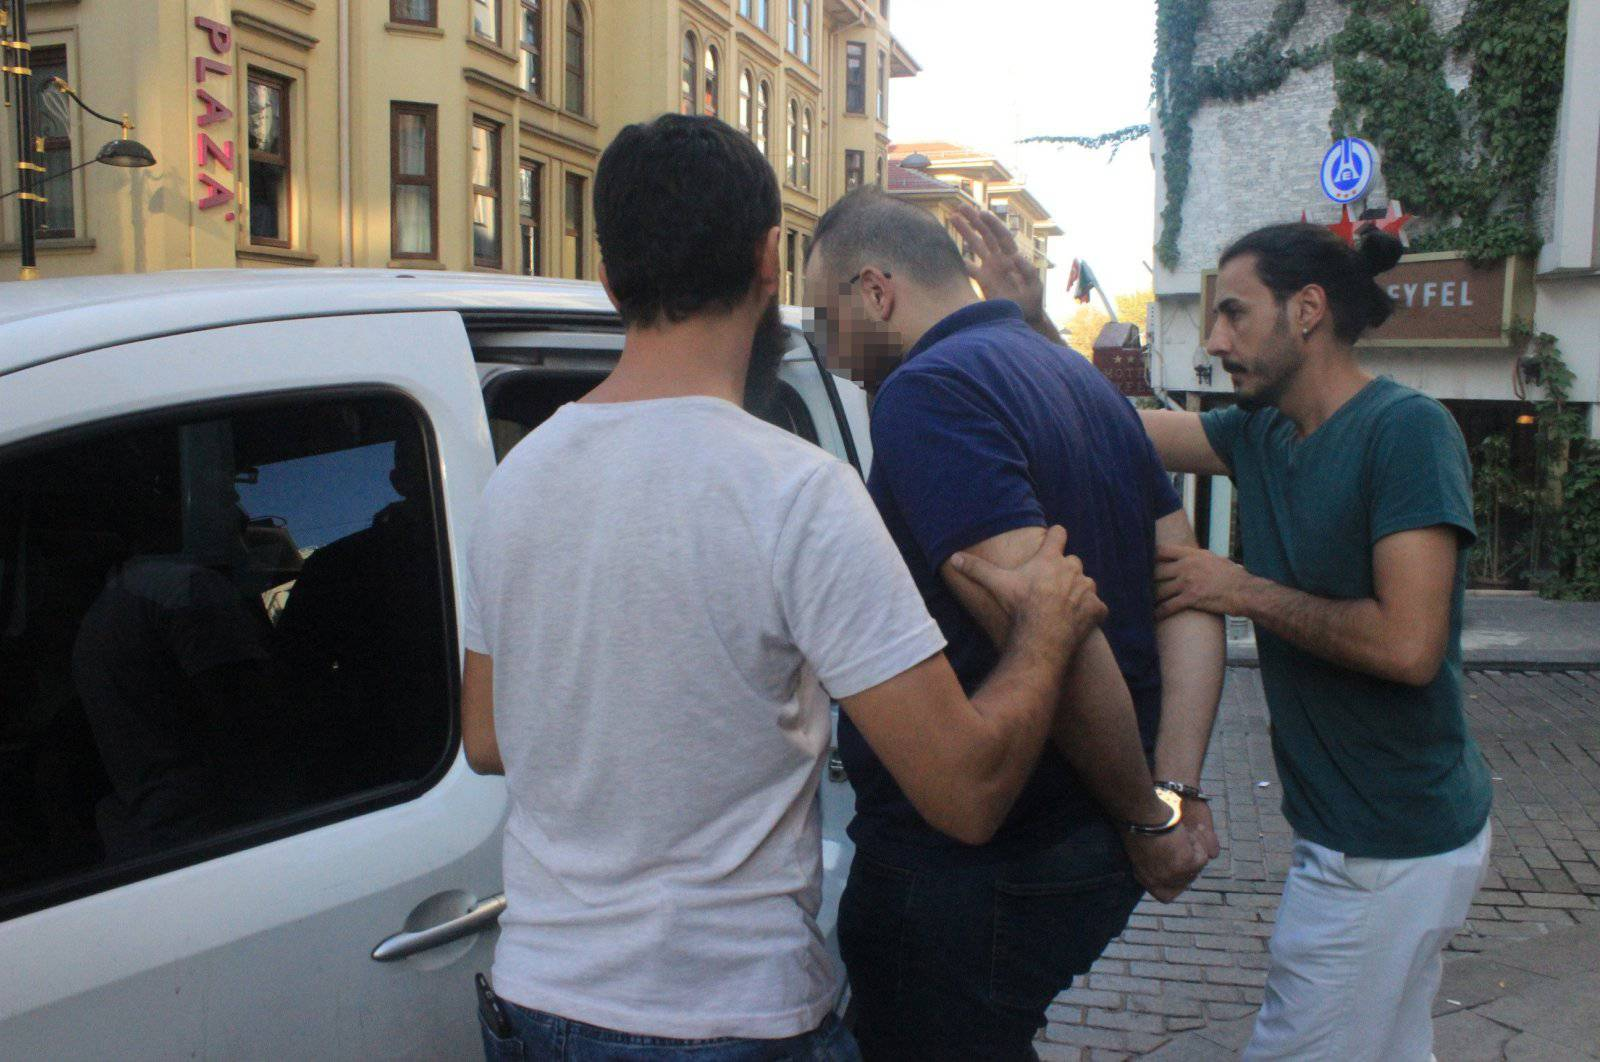 GFATF - LLL - Turkish police detained eigth Islamic State terrorists in operations in Istanbul